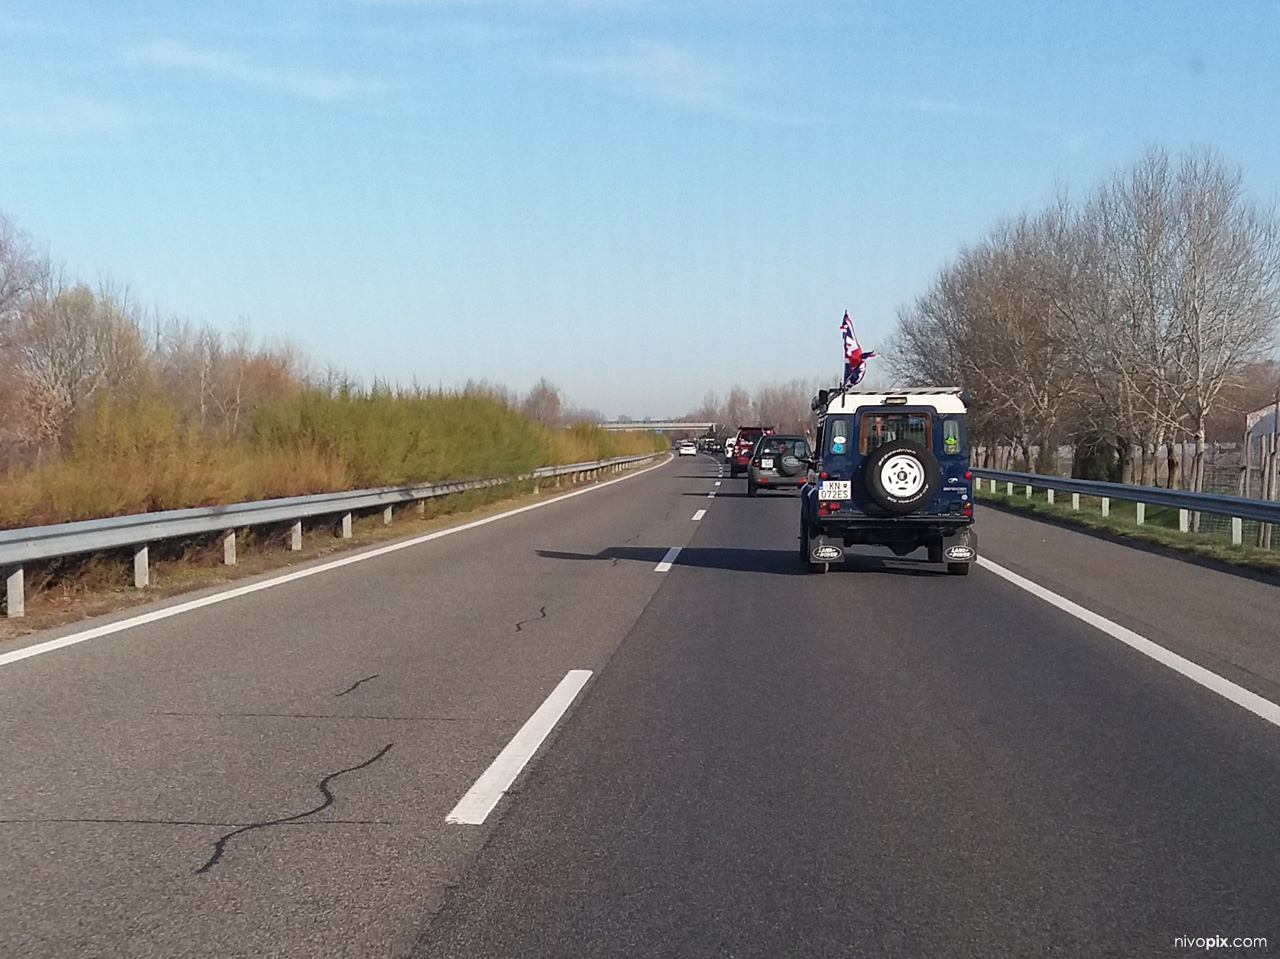 The Last Overland convoy in Hungary